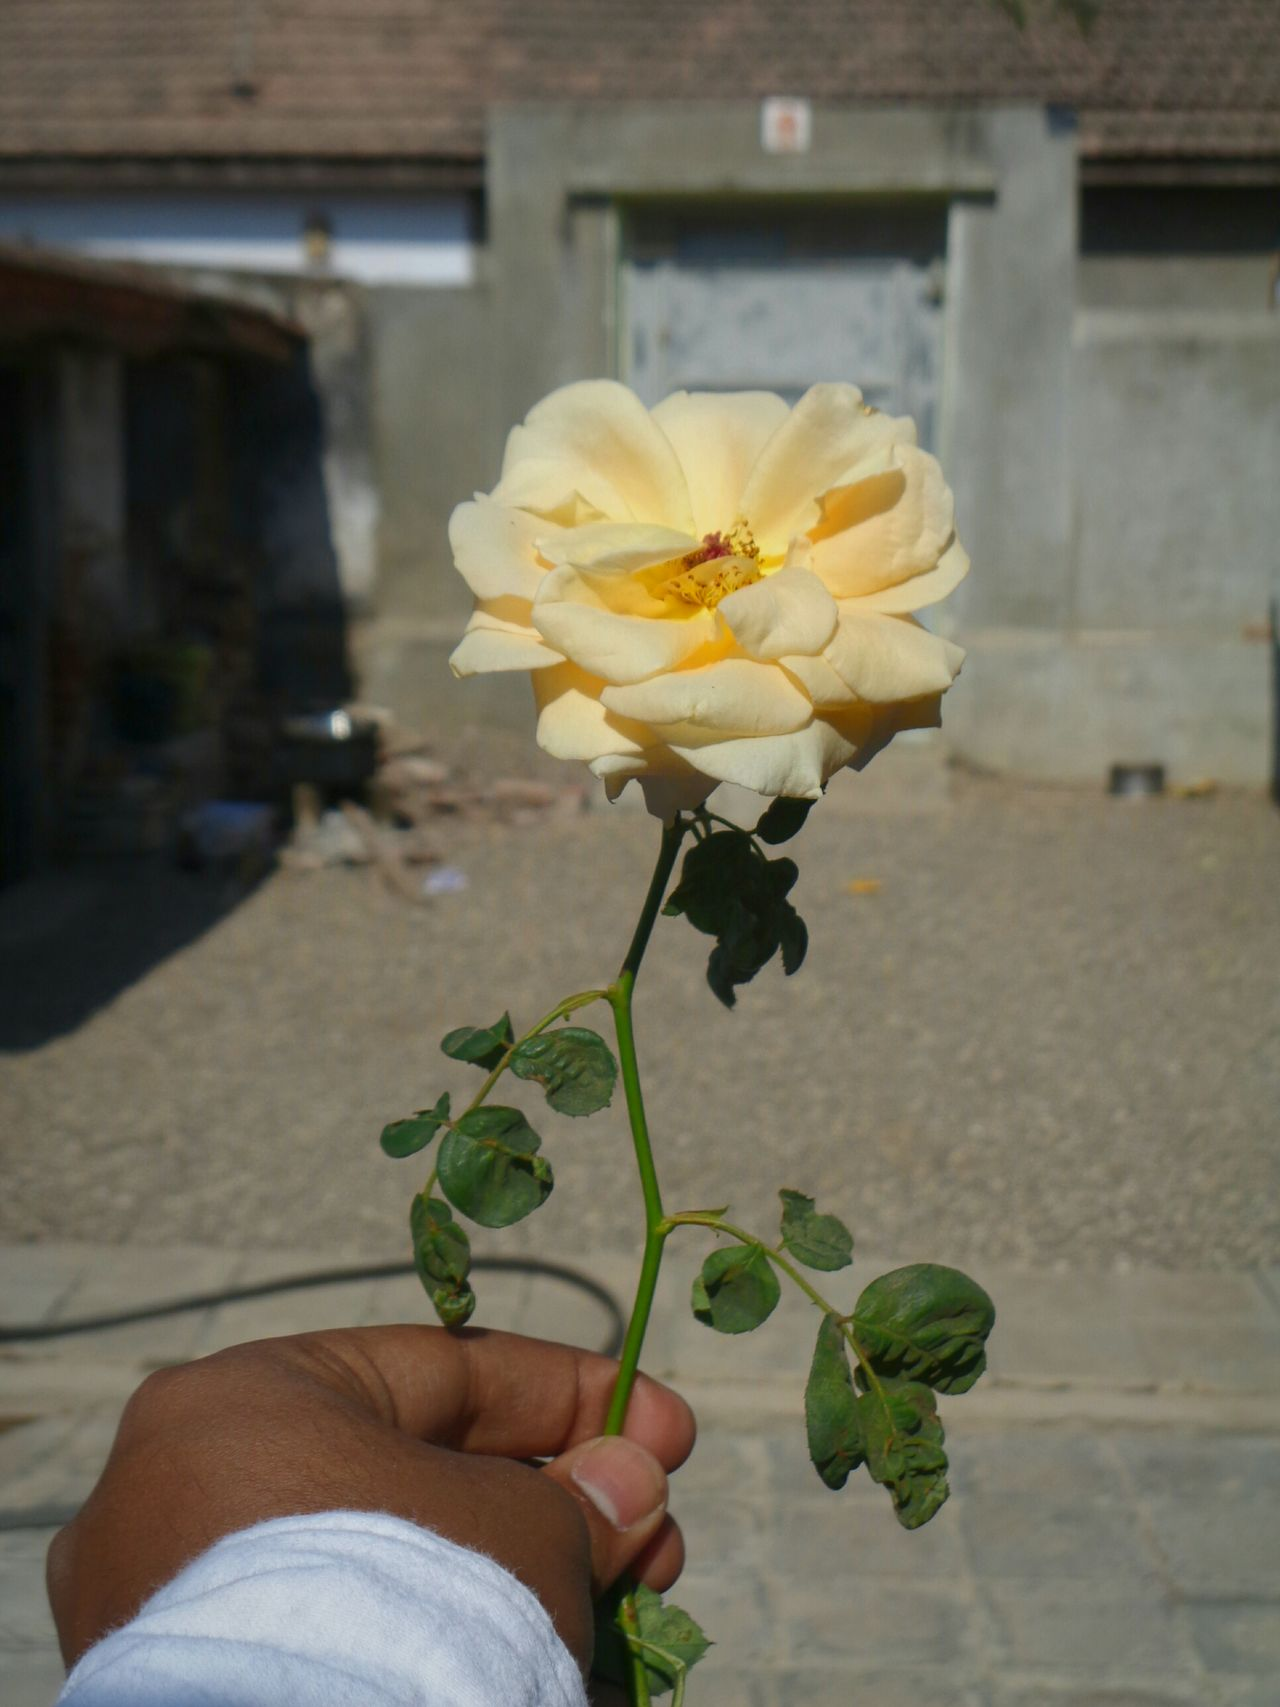 Yellow rose🌻 for friendship💛, dedicate to all my 👫👬friends☺☺ and who will🙌 become friend, , fake friend smell it and go to ****😡😂Human Hand Flower Focus On Foreground One Person Freshness Plant Close-up Fragility Beauty In Nature Nature Me Likeforlike First Eyeem Photo WhatsApp Gujarat Spread The Love Yellow Rose Friendship Friendship? Goodmorning :) Friend? Kik EyeEmFlower Lookingforfriends Indian